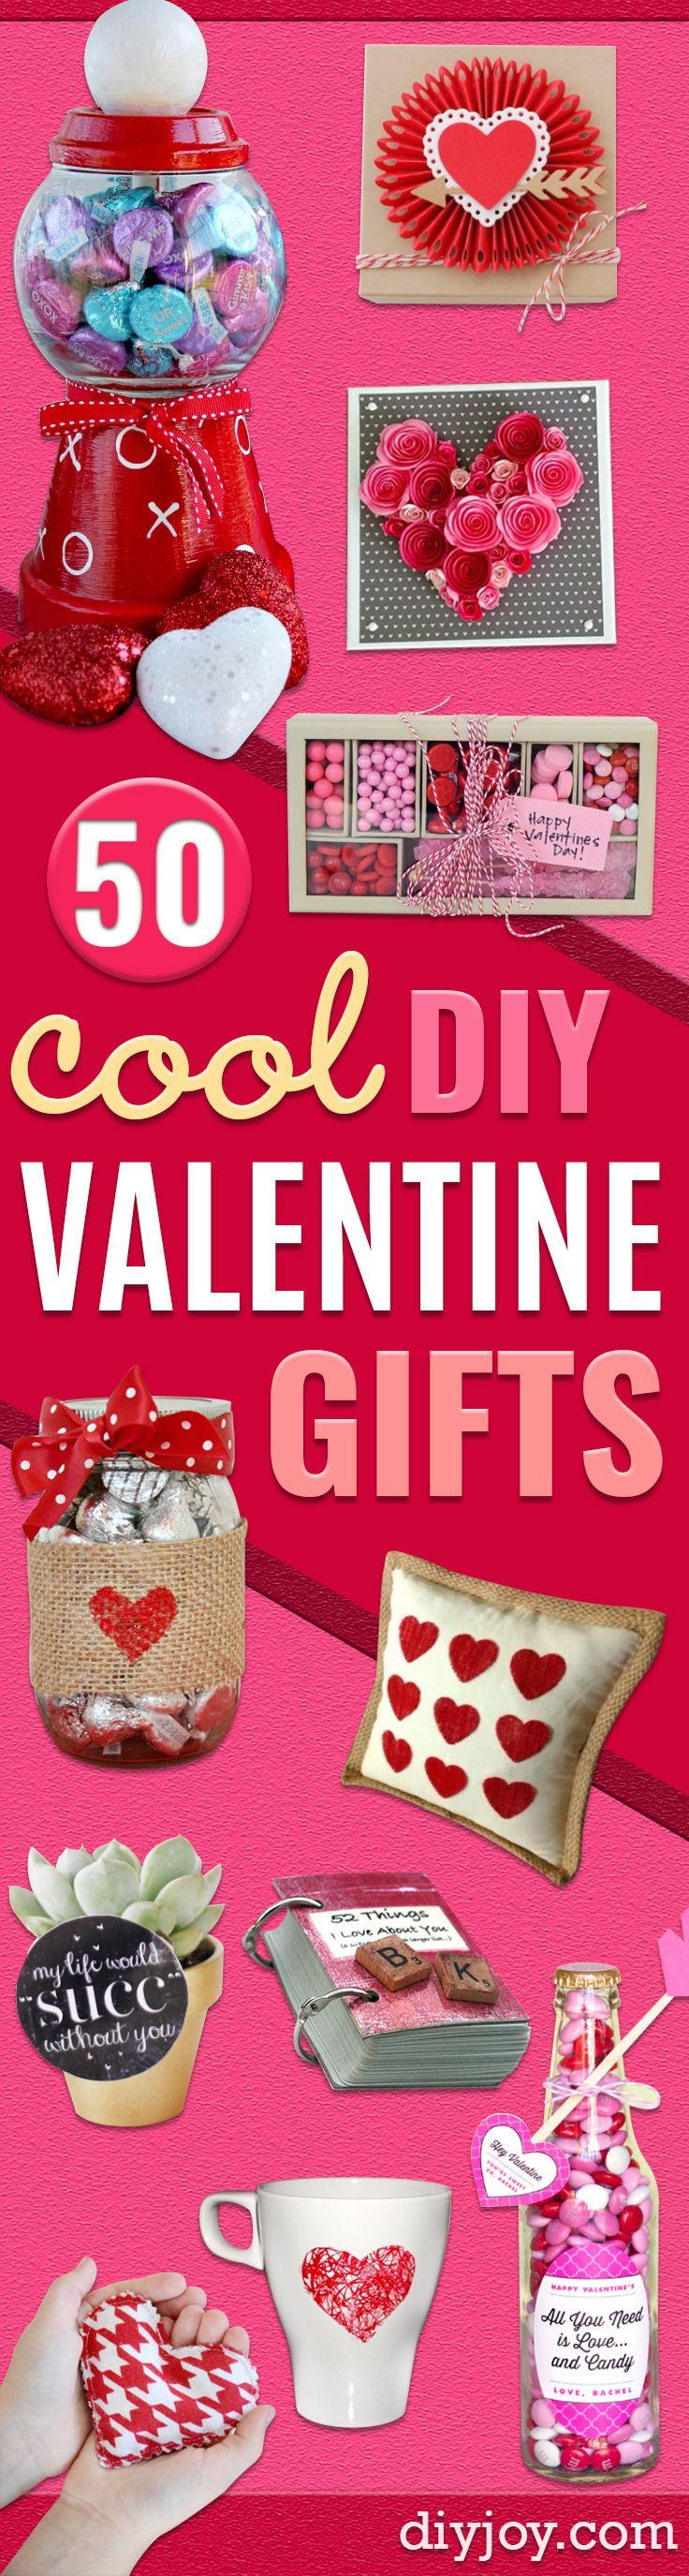 25 Best Ideas About Diy Valentine 39 S Gifts On Pinterest